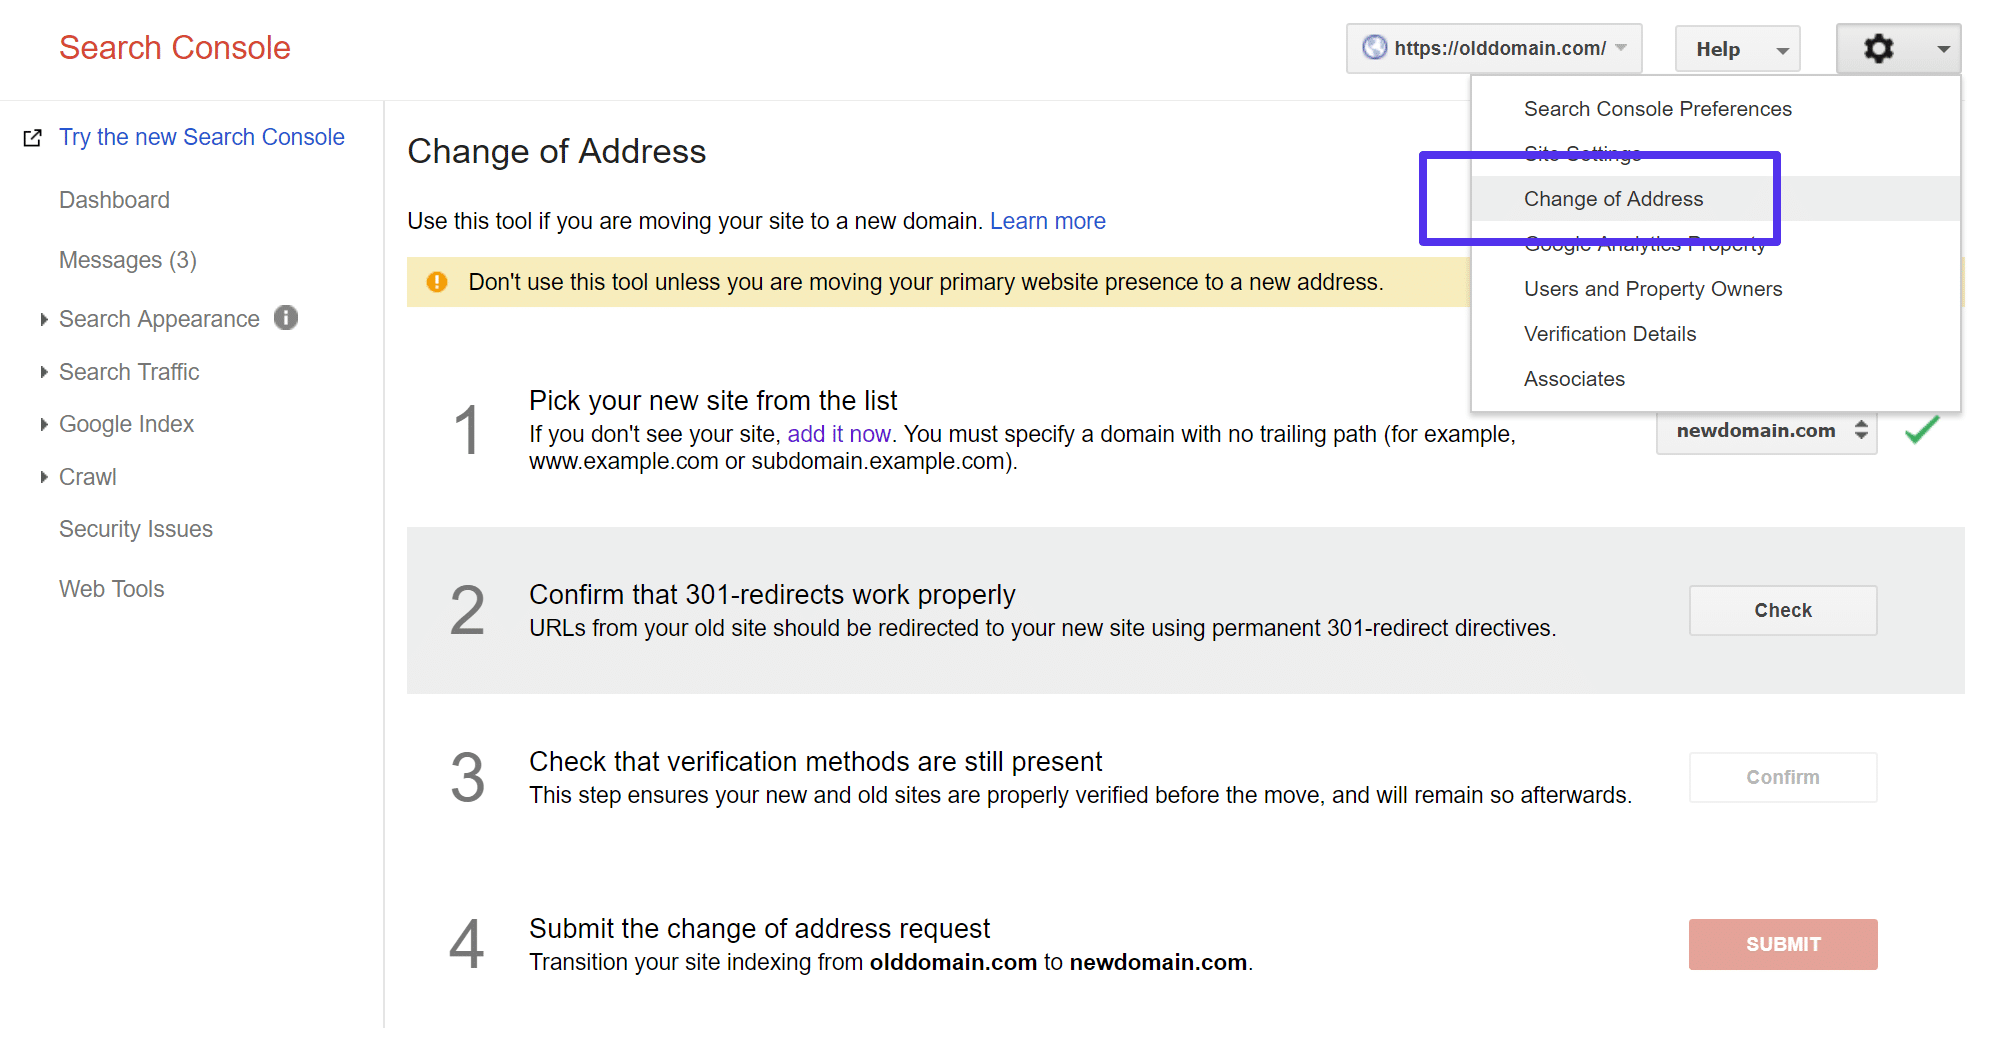 Change of Address with Google Search Console